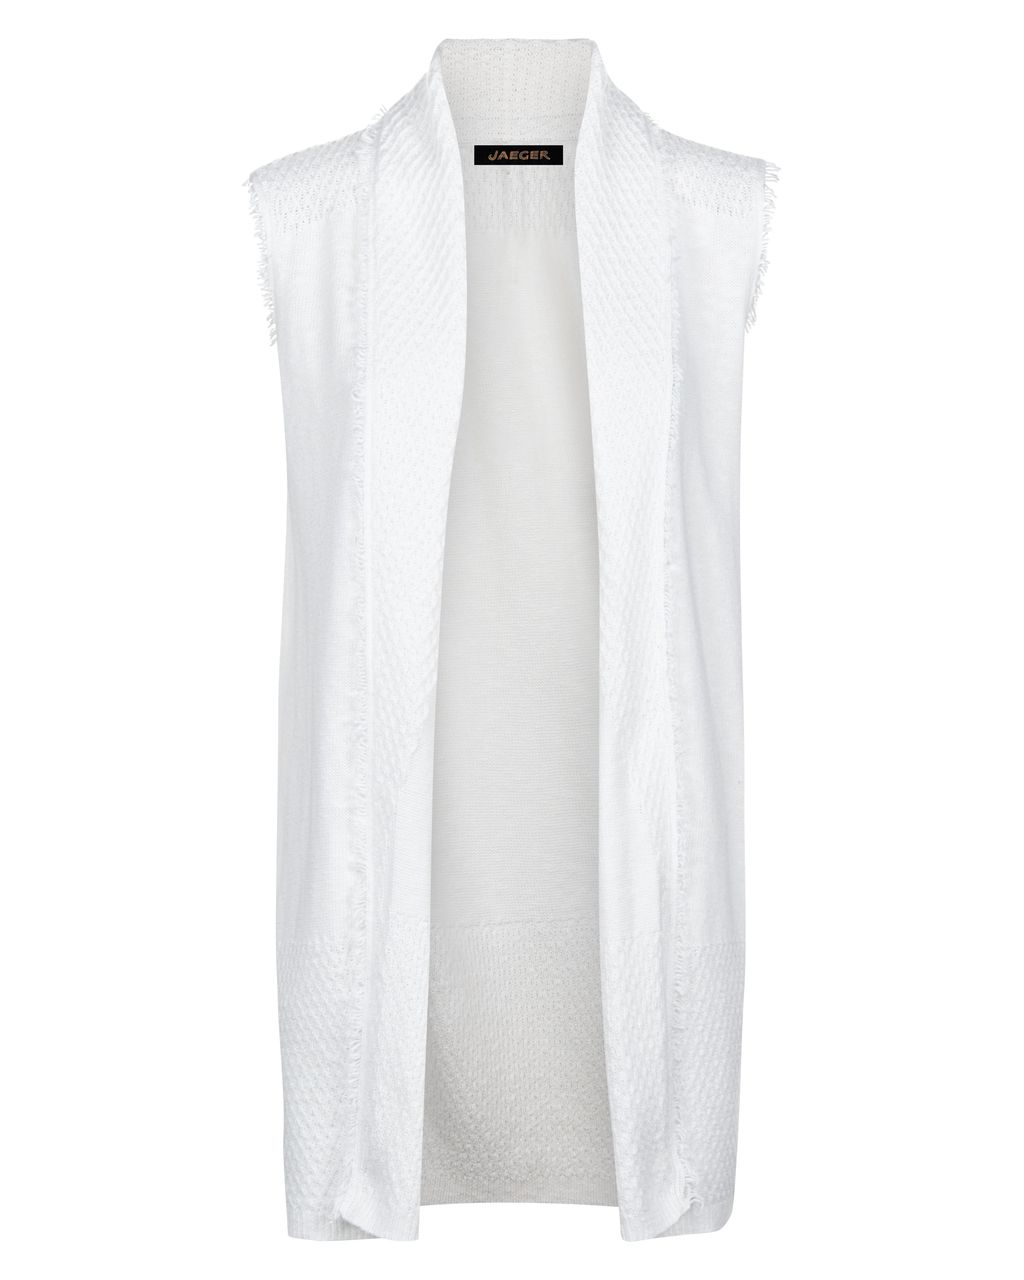 Cotton Linen Fringed Gilet, White - pattern: plain; sleeve style: sleeveless; collar: shawl/waterfall; length: below the bottom; predominant colour: white; occasions: casual, creative work; fit: straight cut (boxy); fibres: cotton - mix; style: waistcoat; sleeve length: sleeveless; texture group: cotton feel fabrics; collar break: low/open; pattern type: fabric; season: s/s 2016